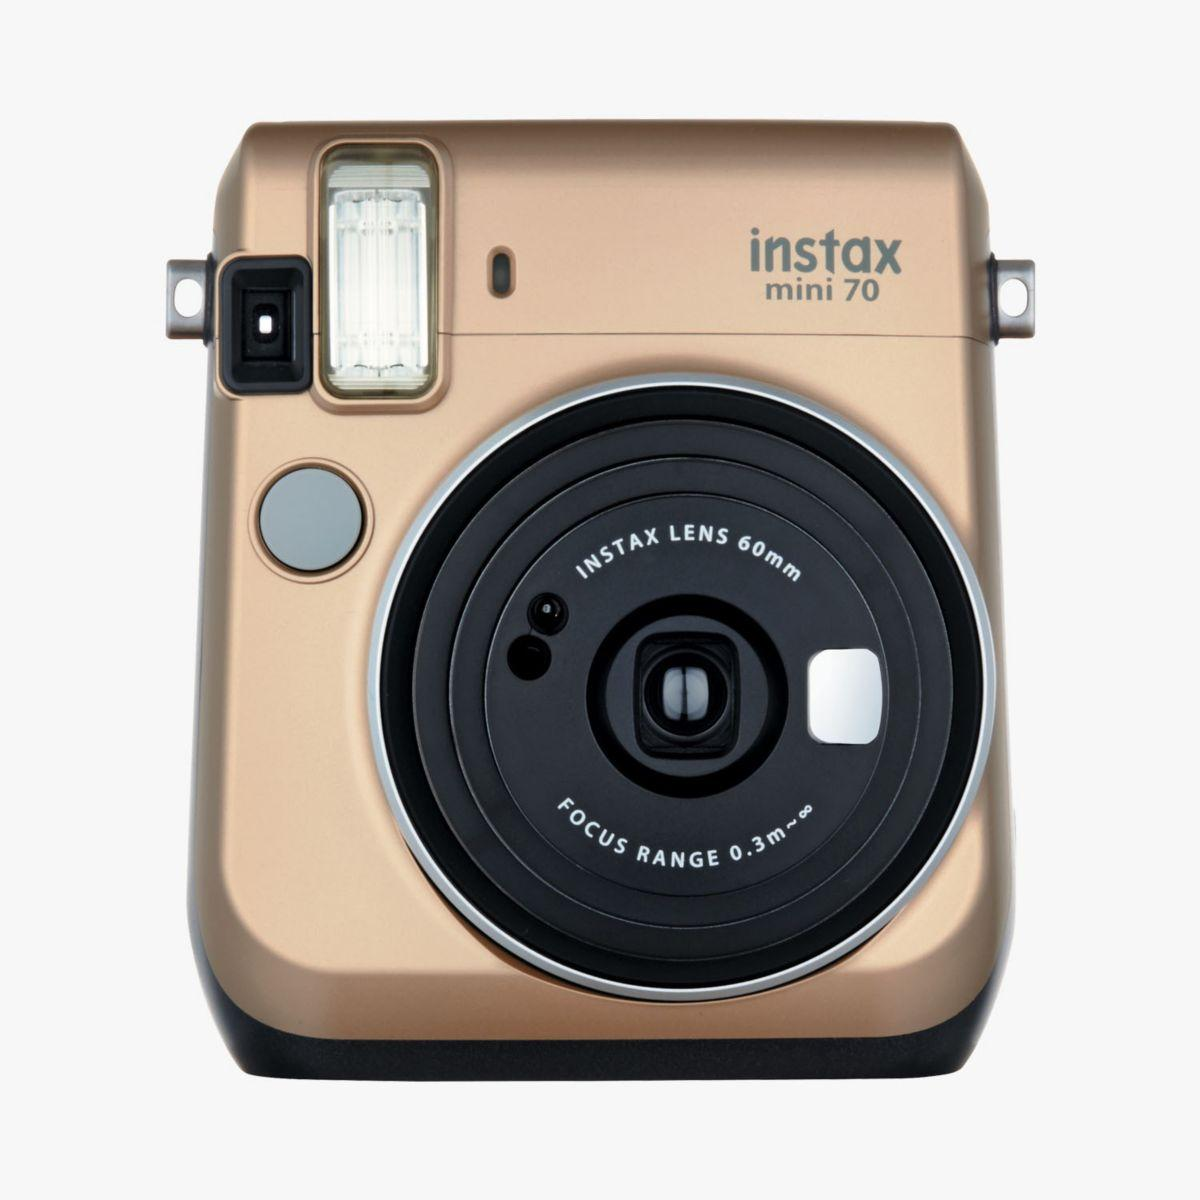 Appareil photo num?rique fuji instax mini 70 dor?